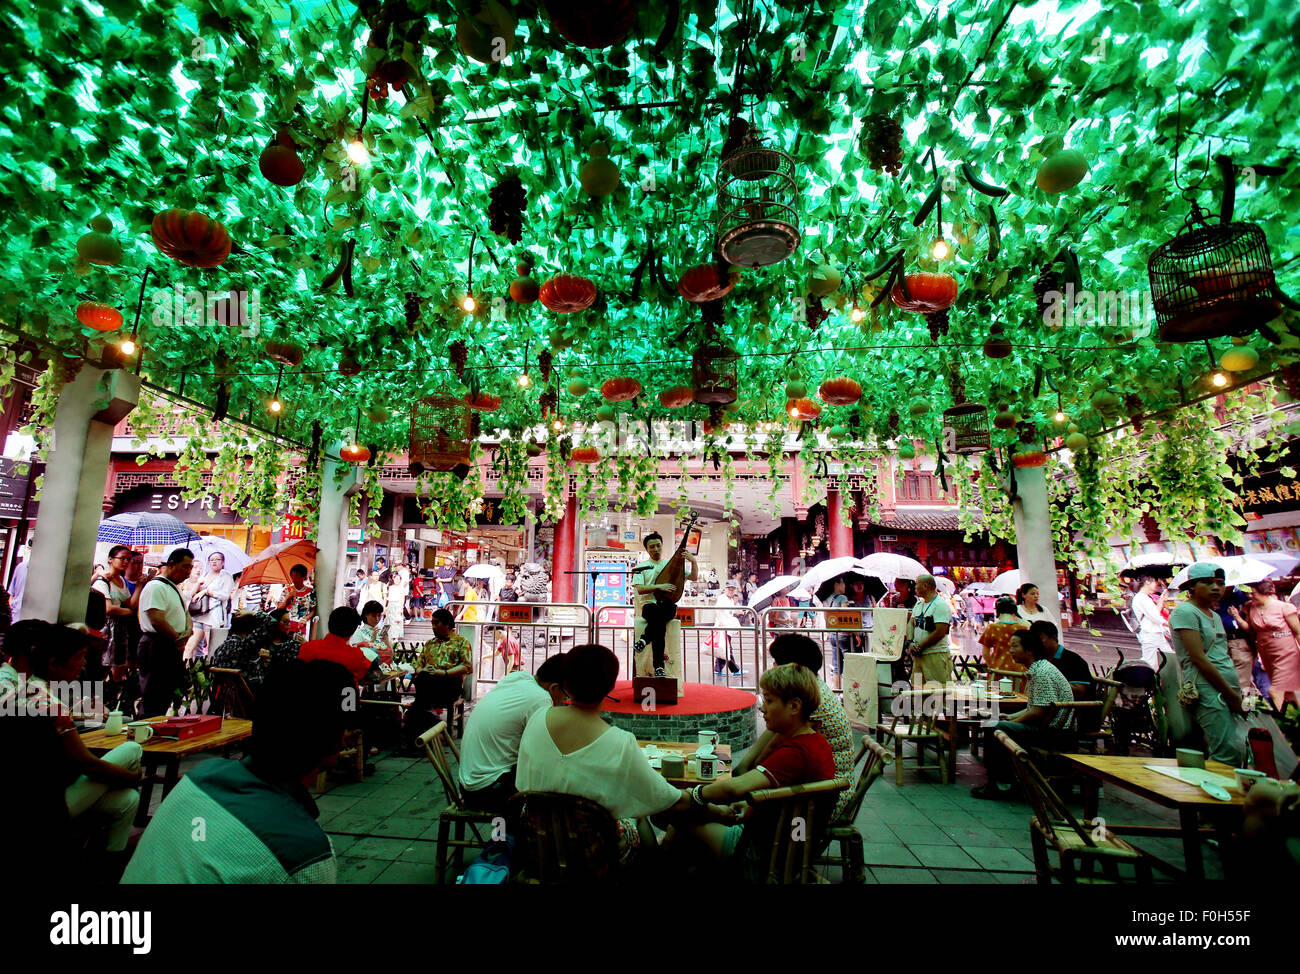 Shanghai, China. 16th Aug, 2015. Tourists watch ballad singing performance at a night fair in Yu Garden of Shanghai, - Stock Image